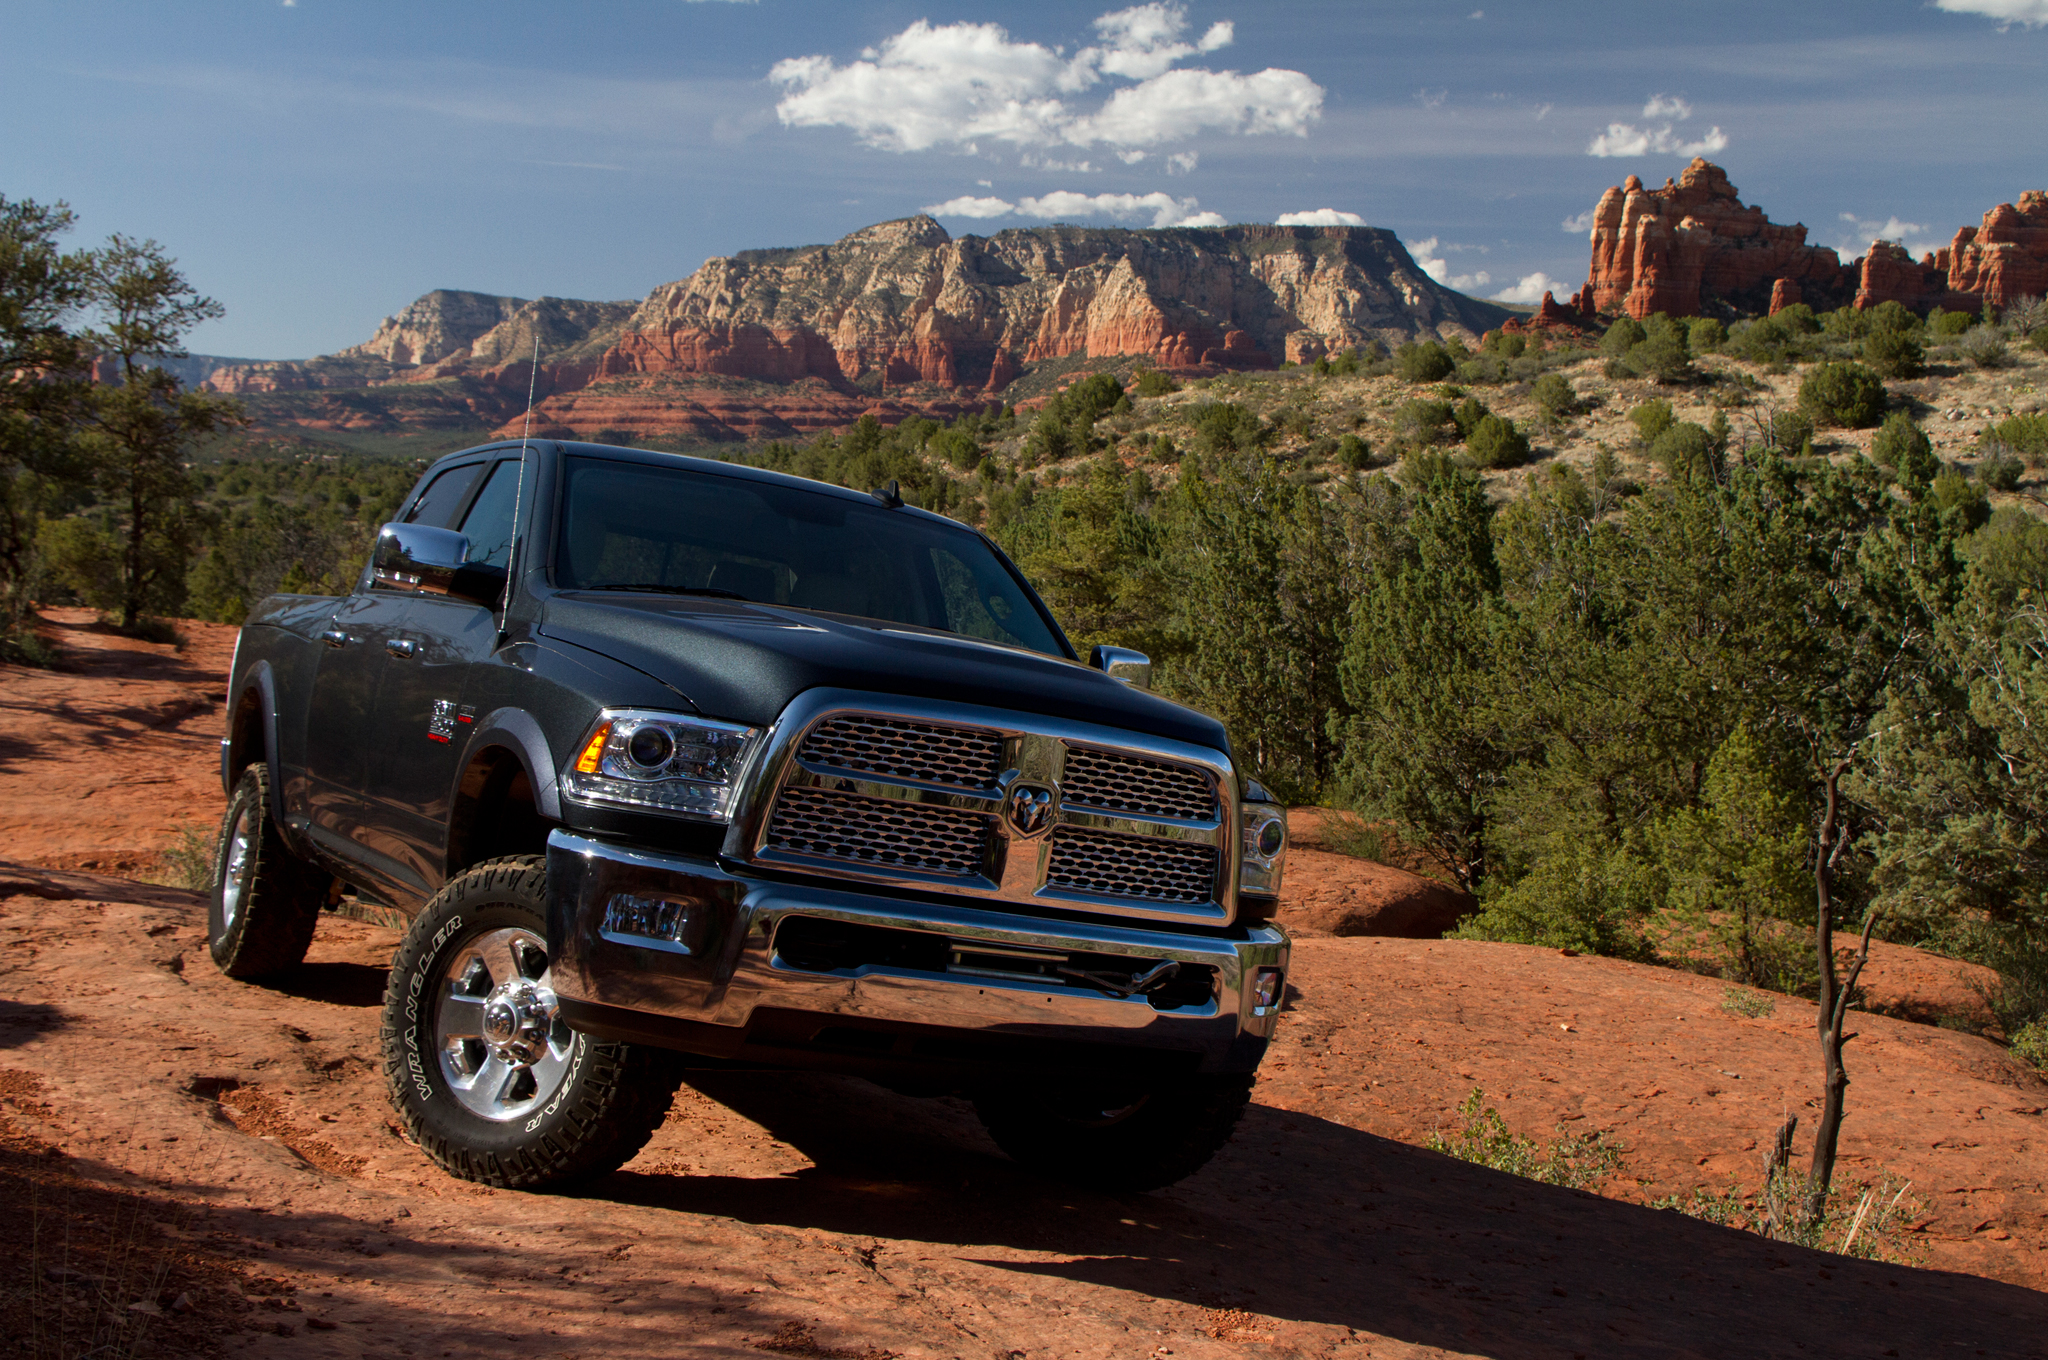 2014 Ram 2500 Power Wagon First Drive - Motor Trend